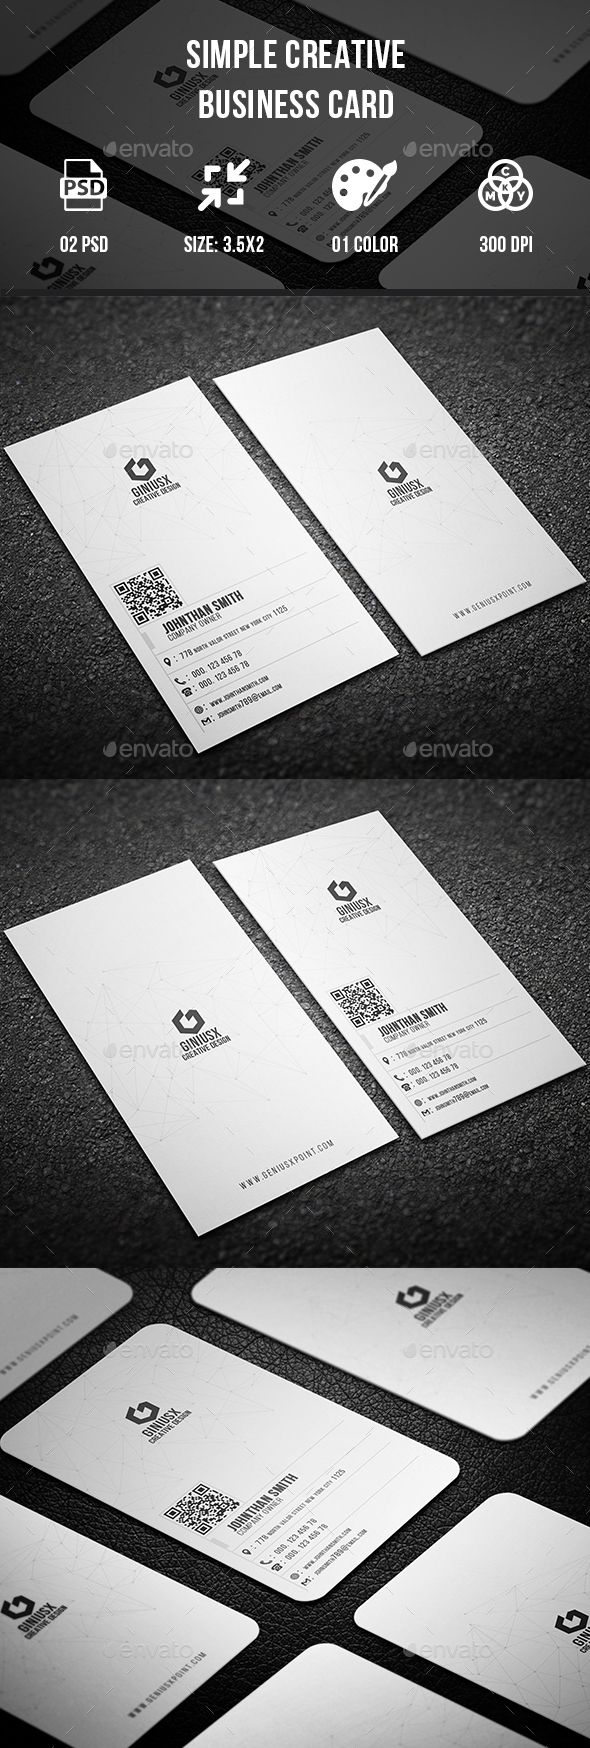 Simple Creative Business Card | Pinterest | Business cards ...